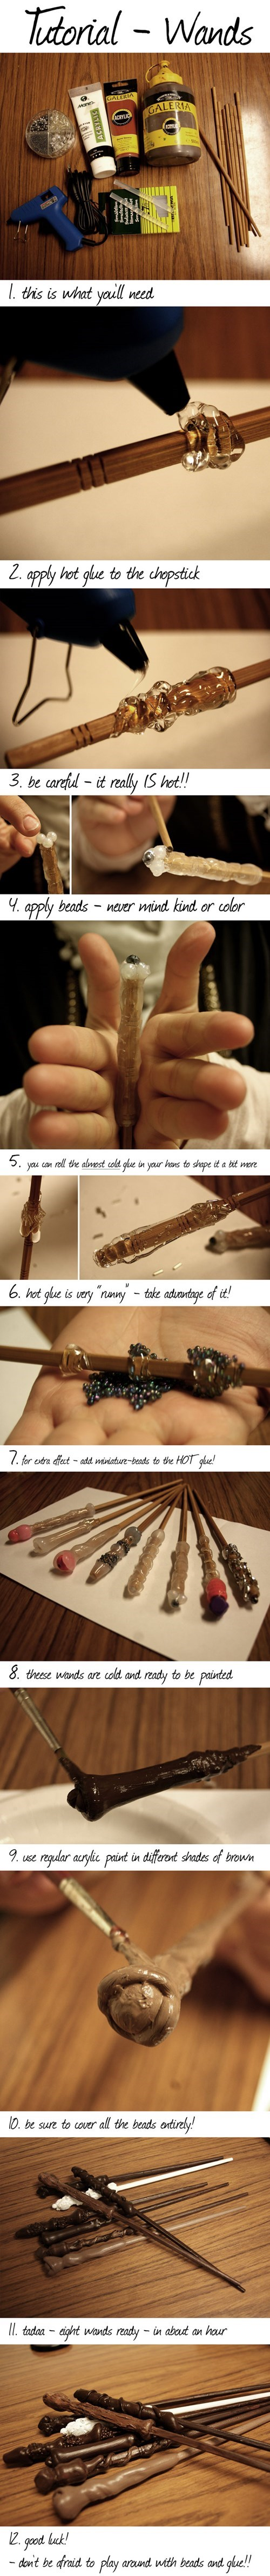 DIY Harry Potter wands - 7948717824